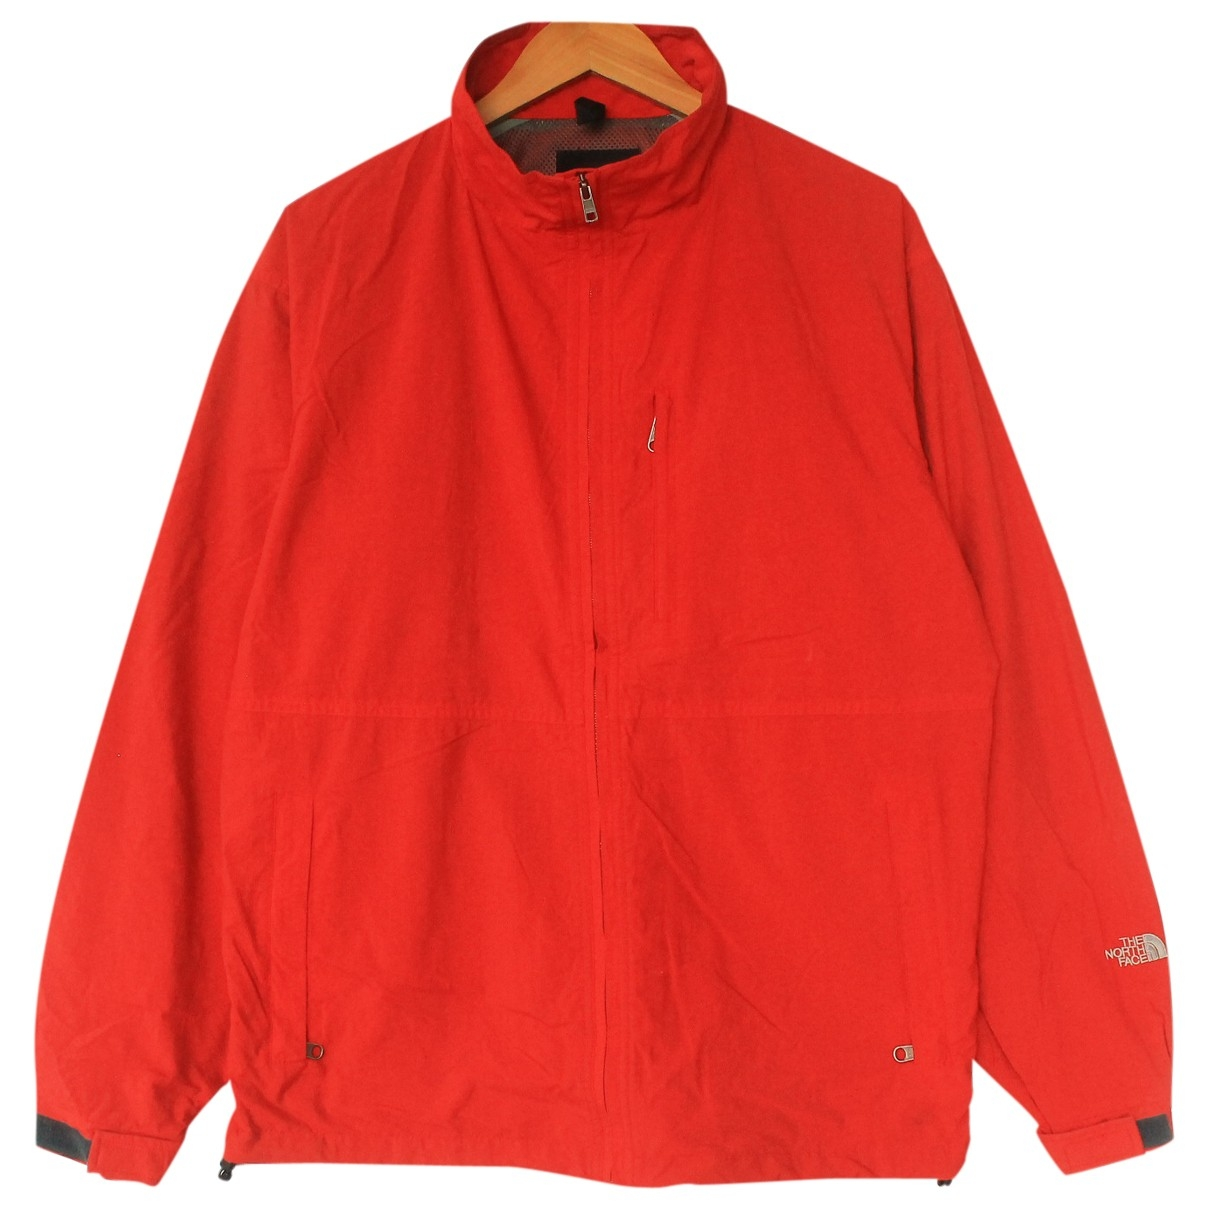 The North Face \N Red jacket  for Men XL International